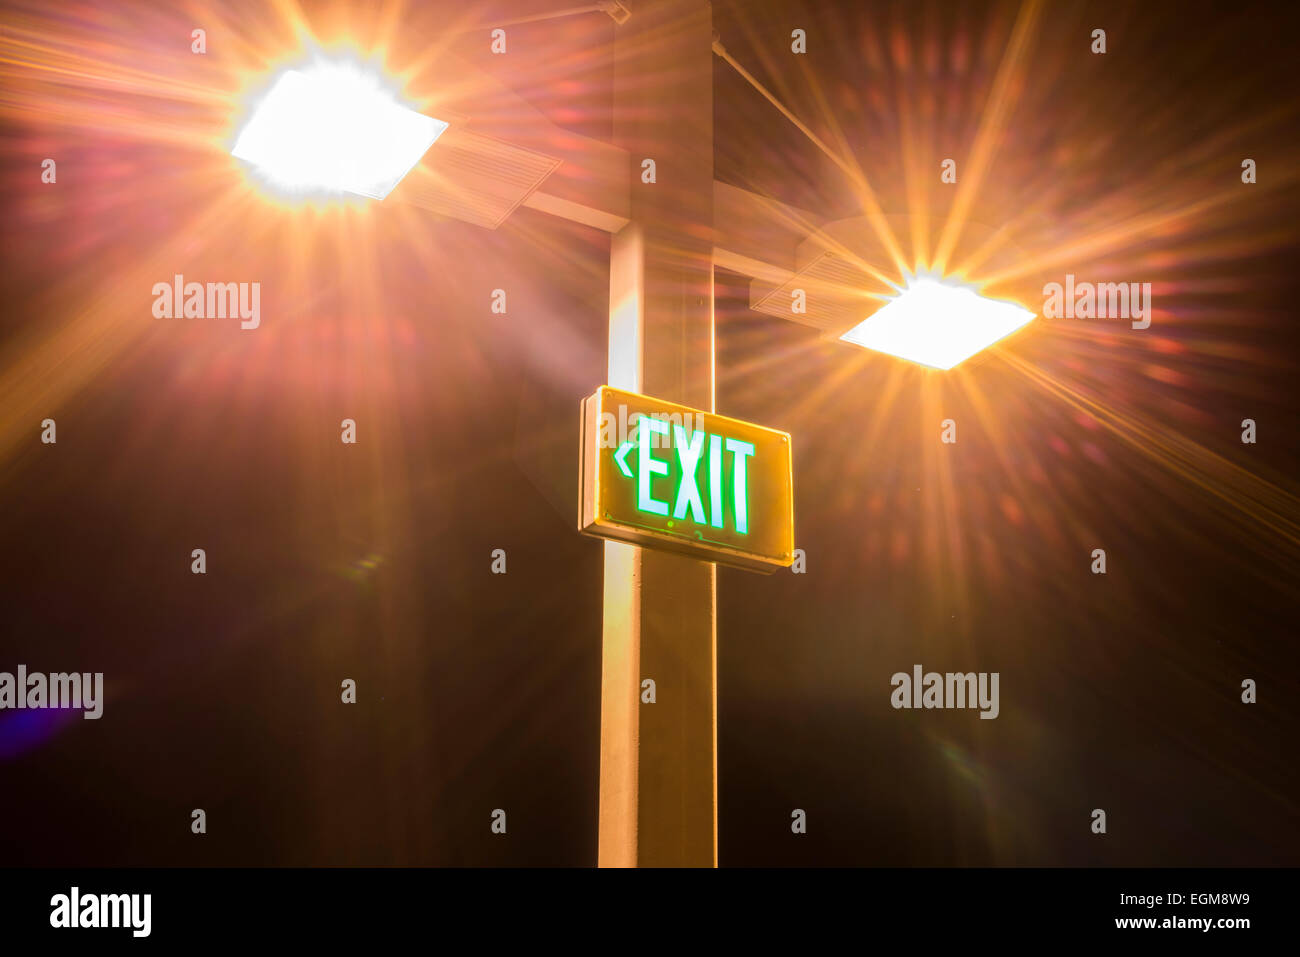 Bright lights above a lighted exit sign at night. - Stock Image